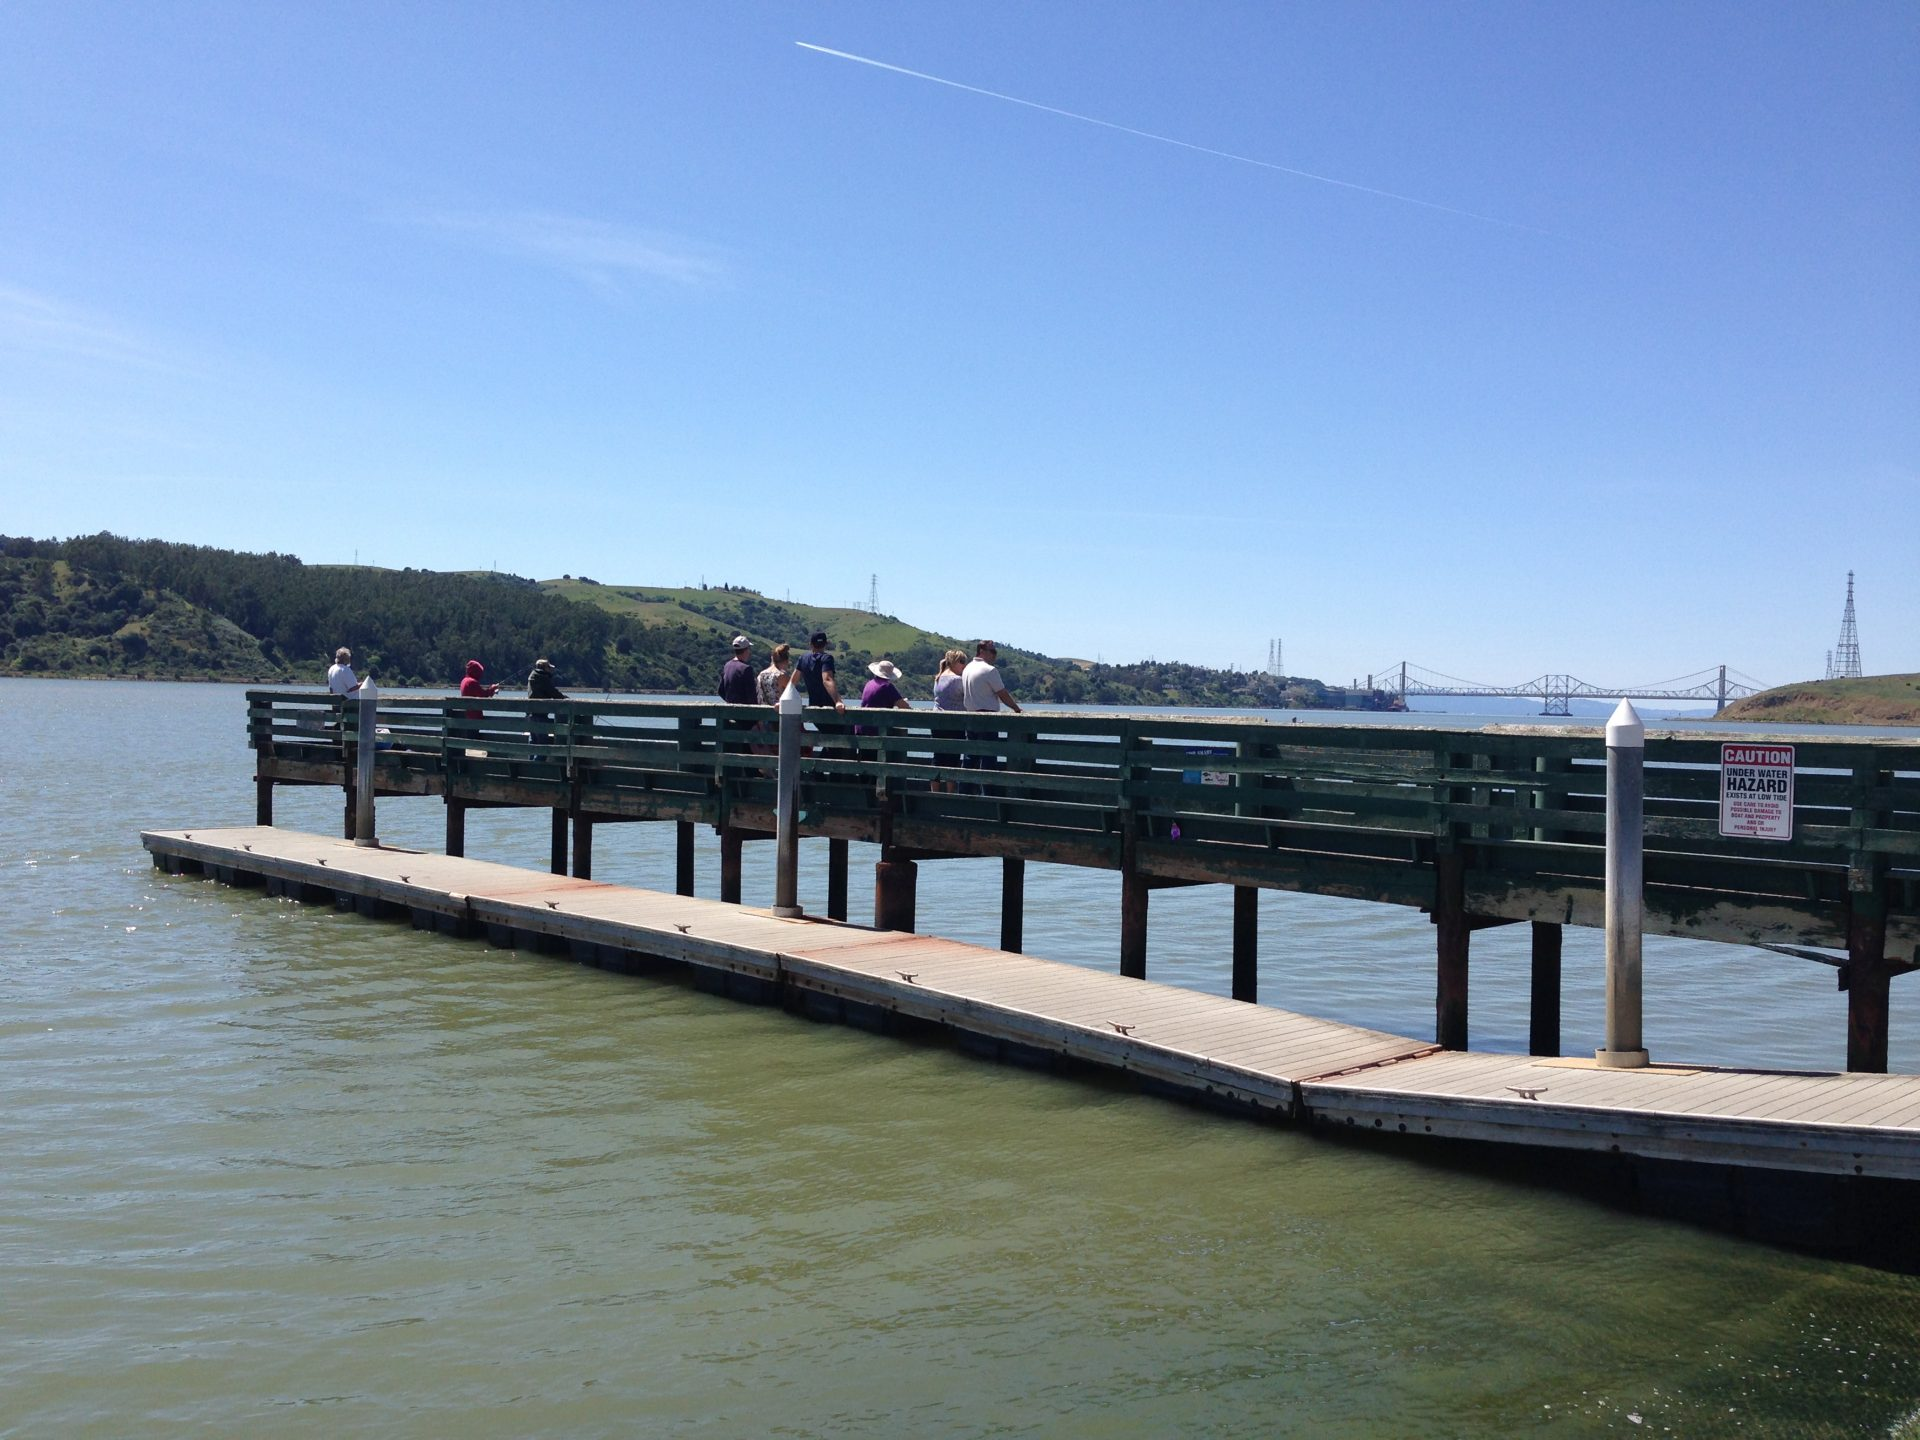 people on fishing pier, floating dock in foreground